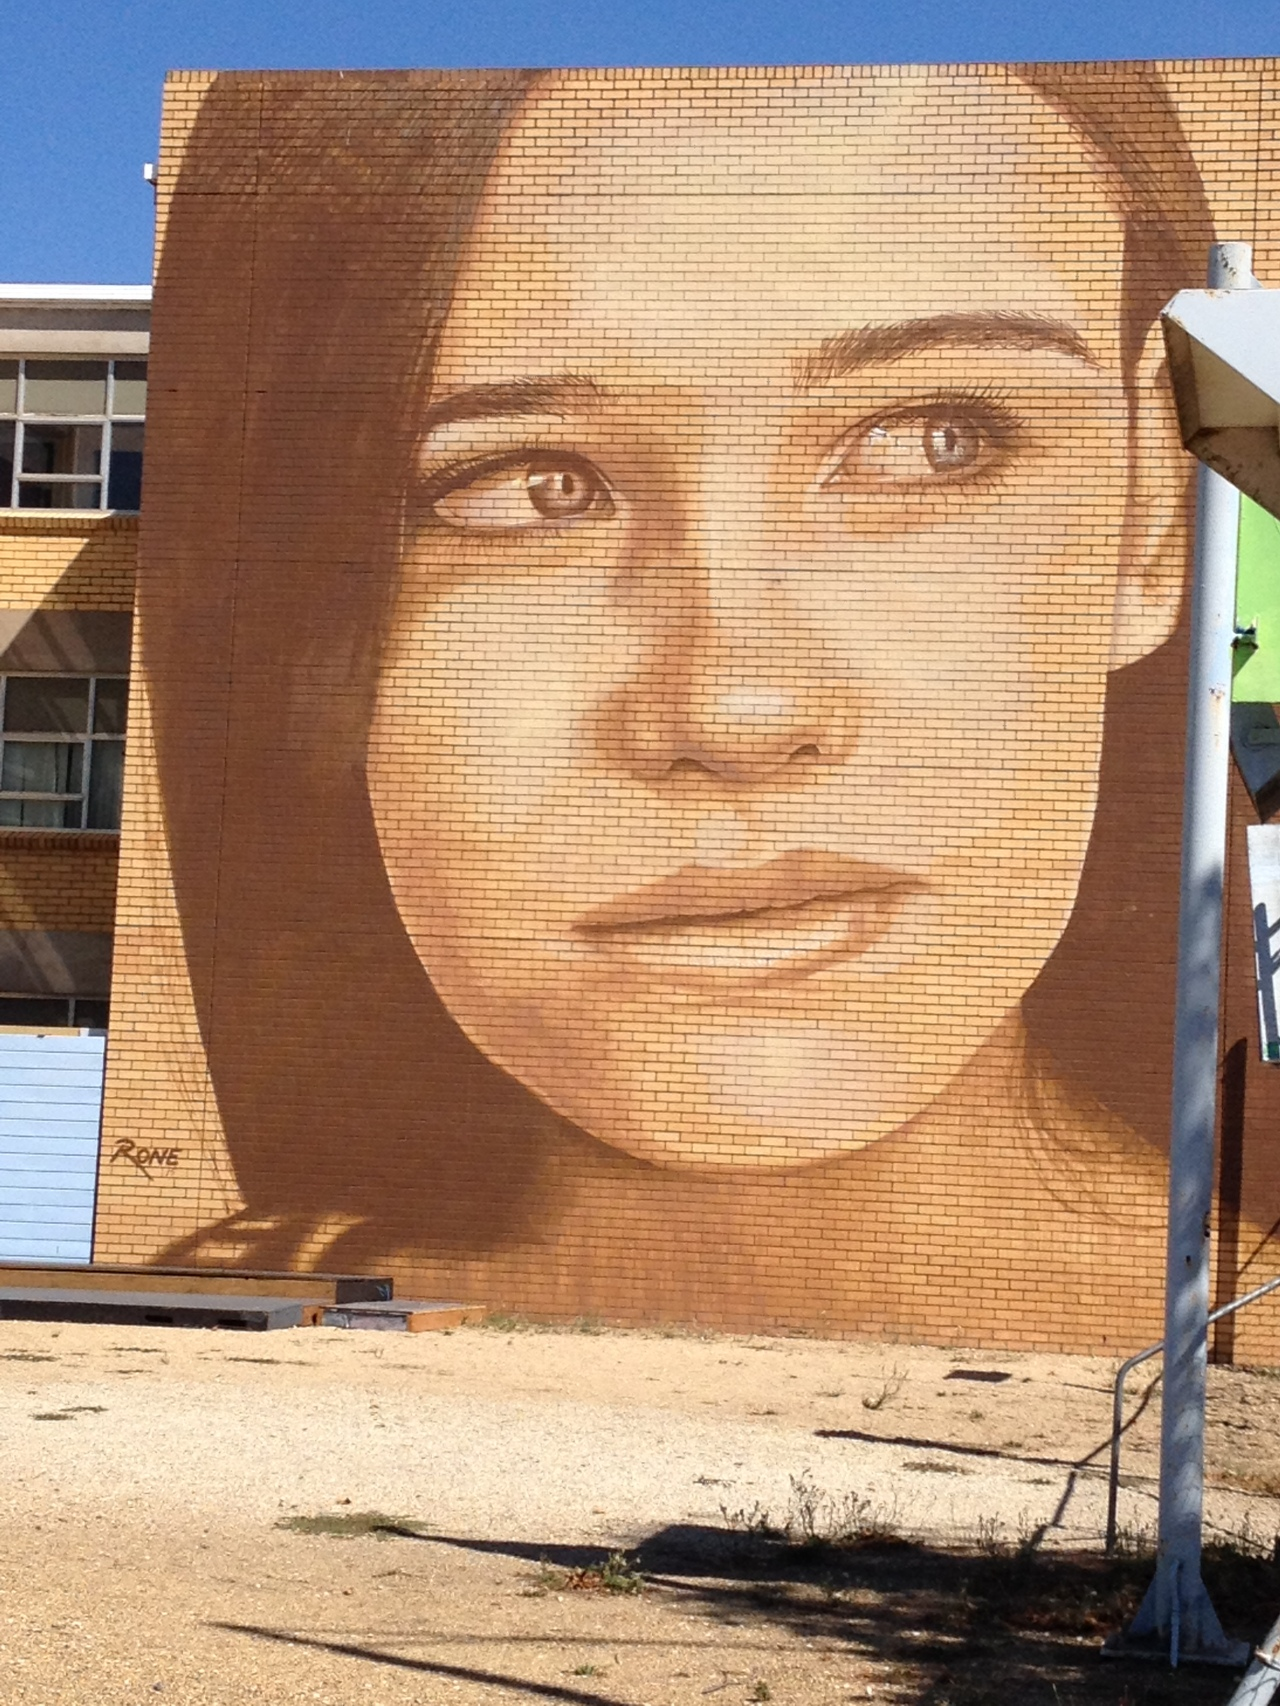 World Class Street Art – In Benalla!